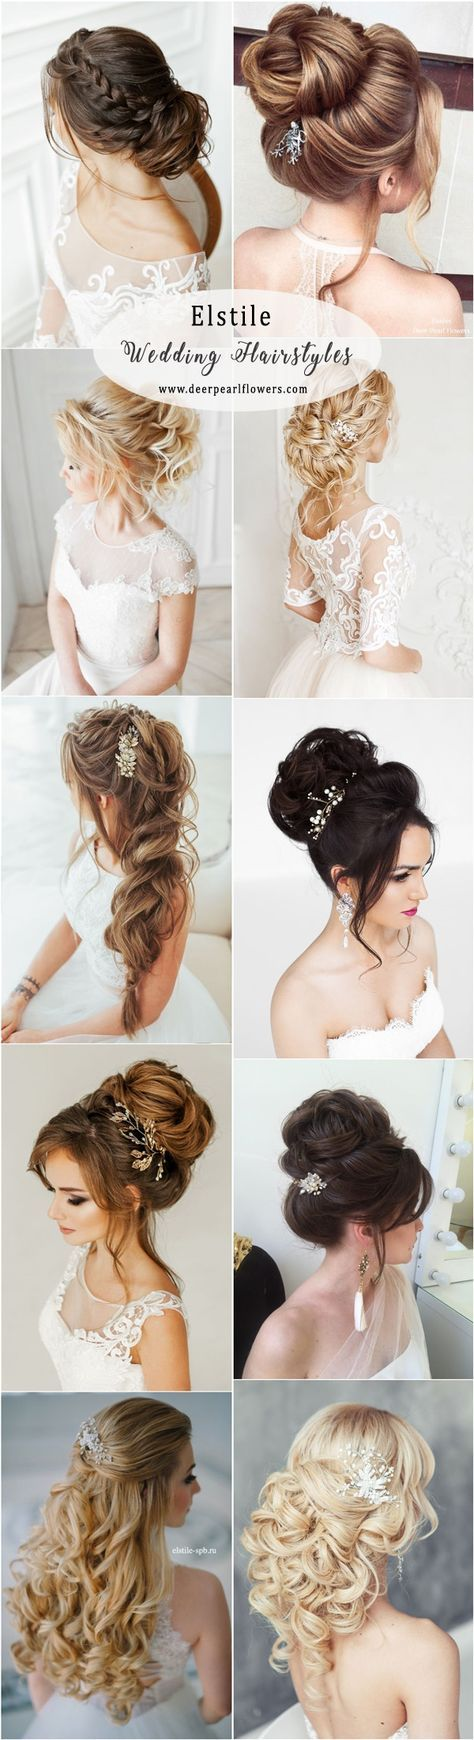 best long wedding hairstyles from top hairstylists formal